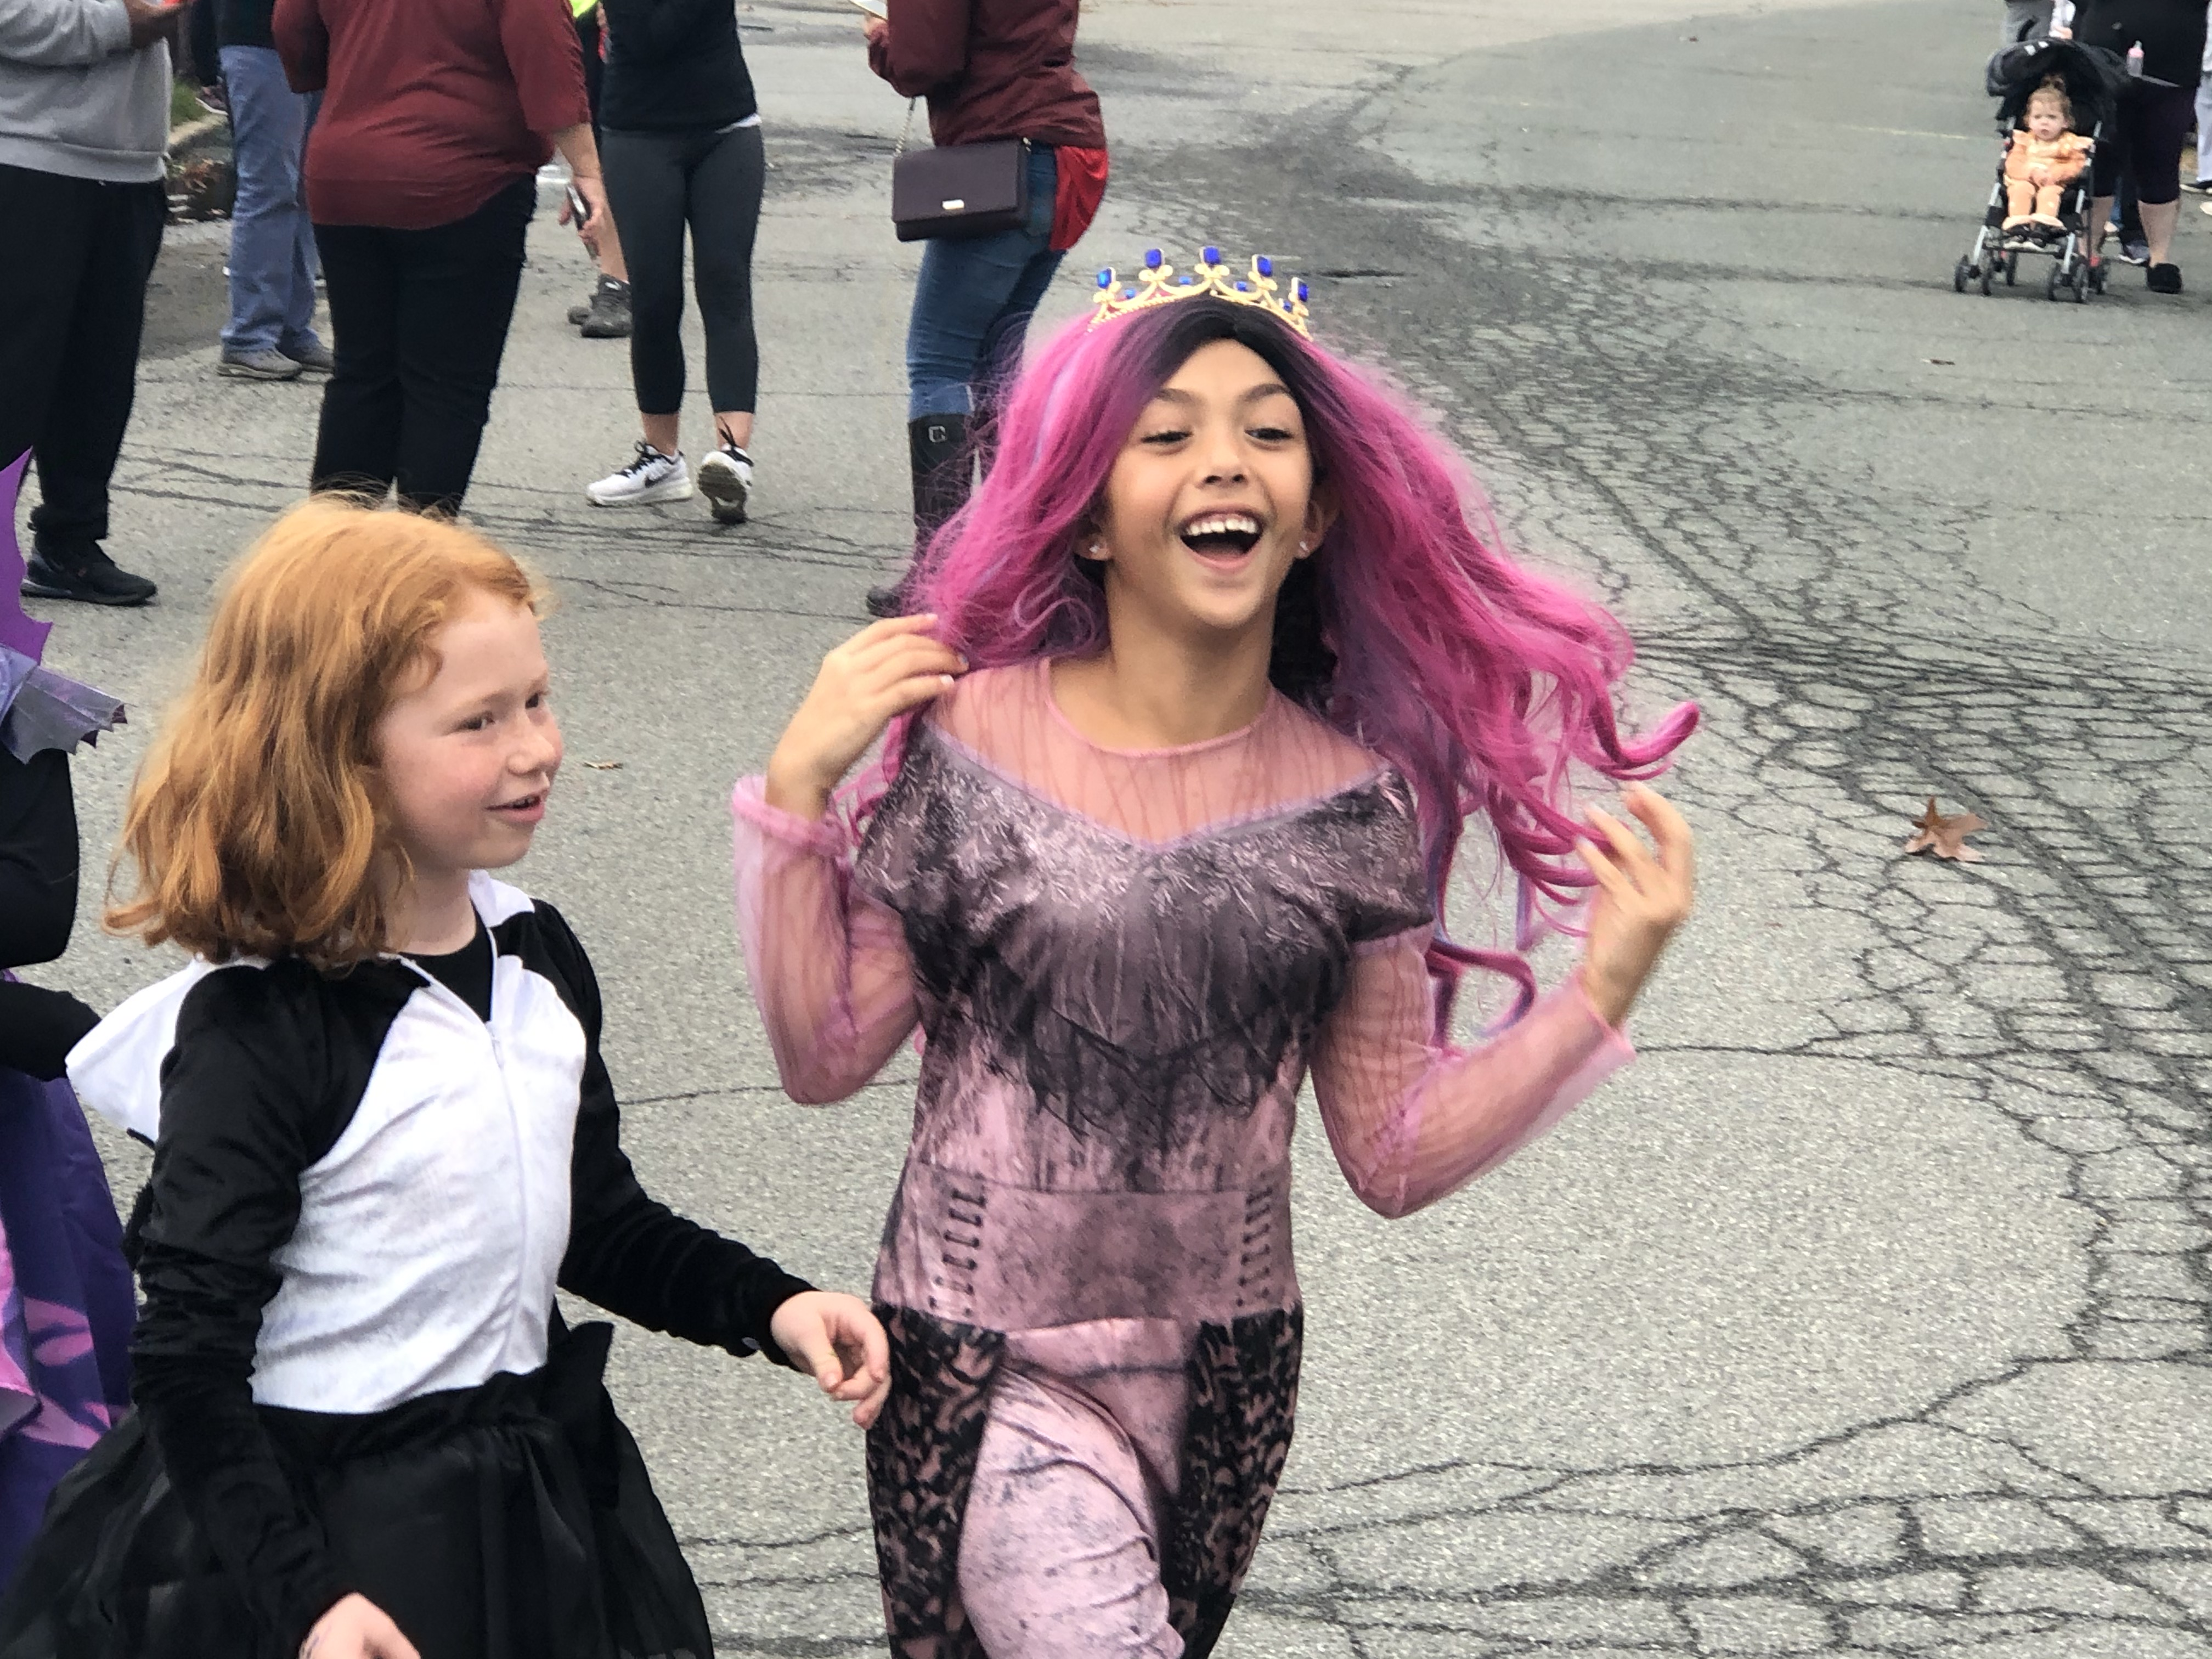 two girls march in Halloween costumes